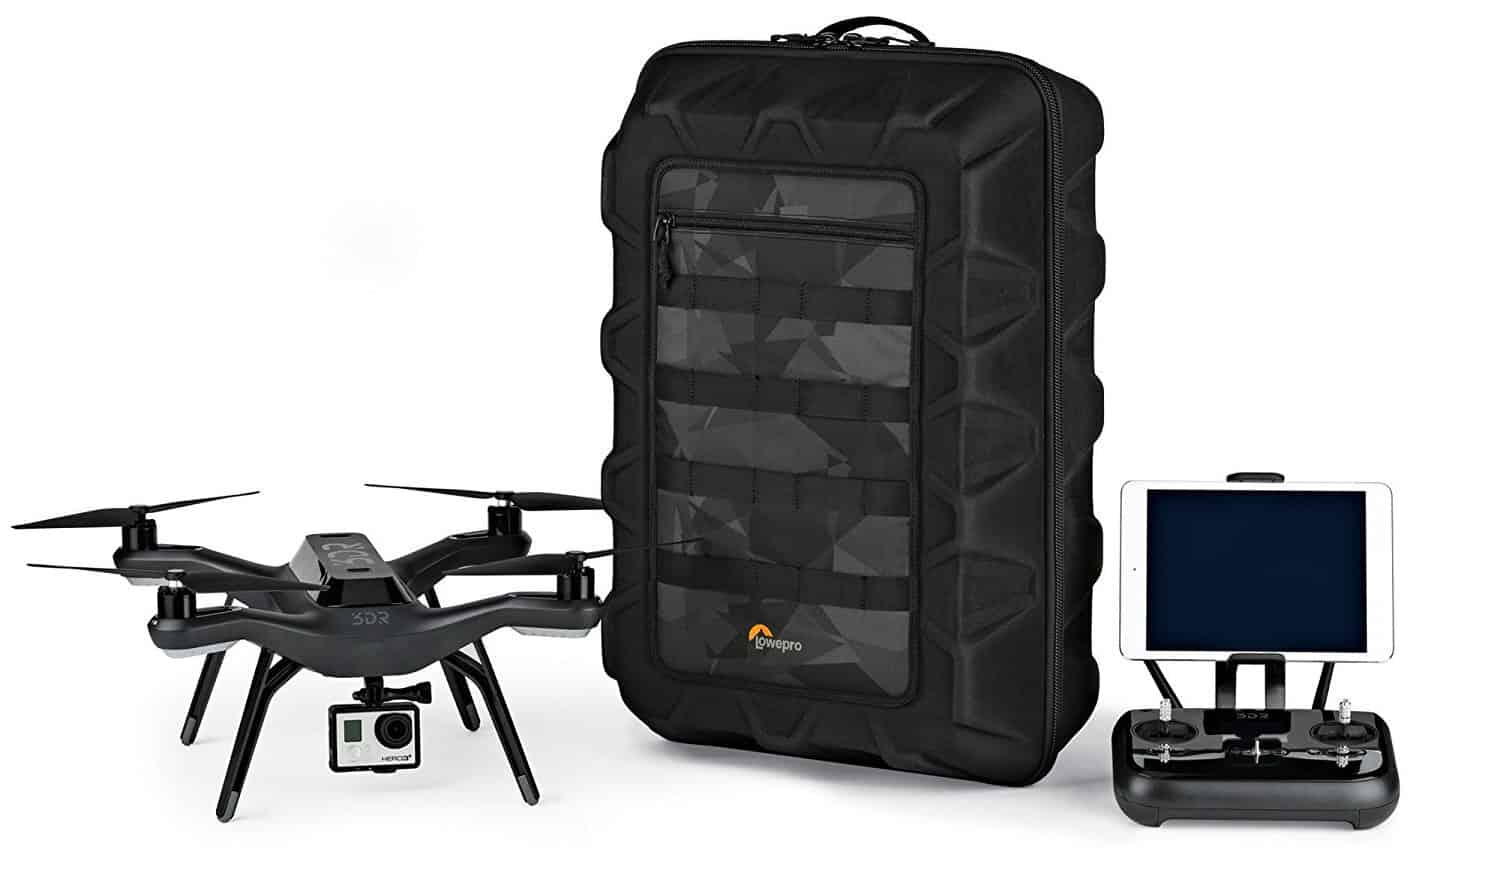 The Lowepro DroneGuard CS 400 Review